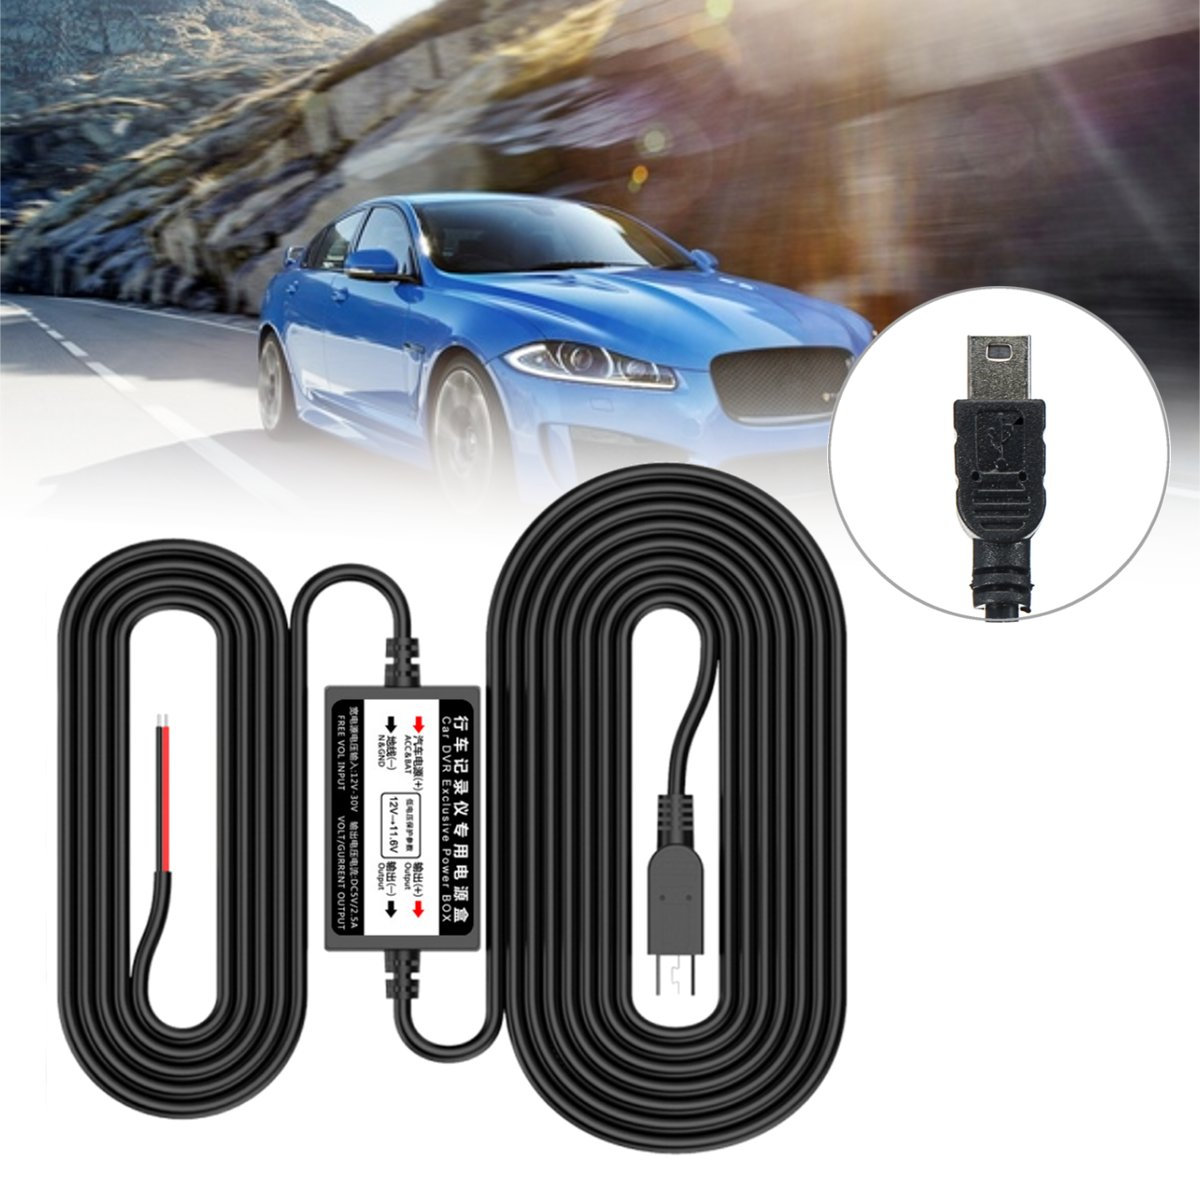 3.5m Car Hard Wire Kit Mini USB Hardwire for Dash Cam Camcorder Vehicle DVR